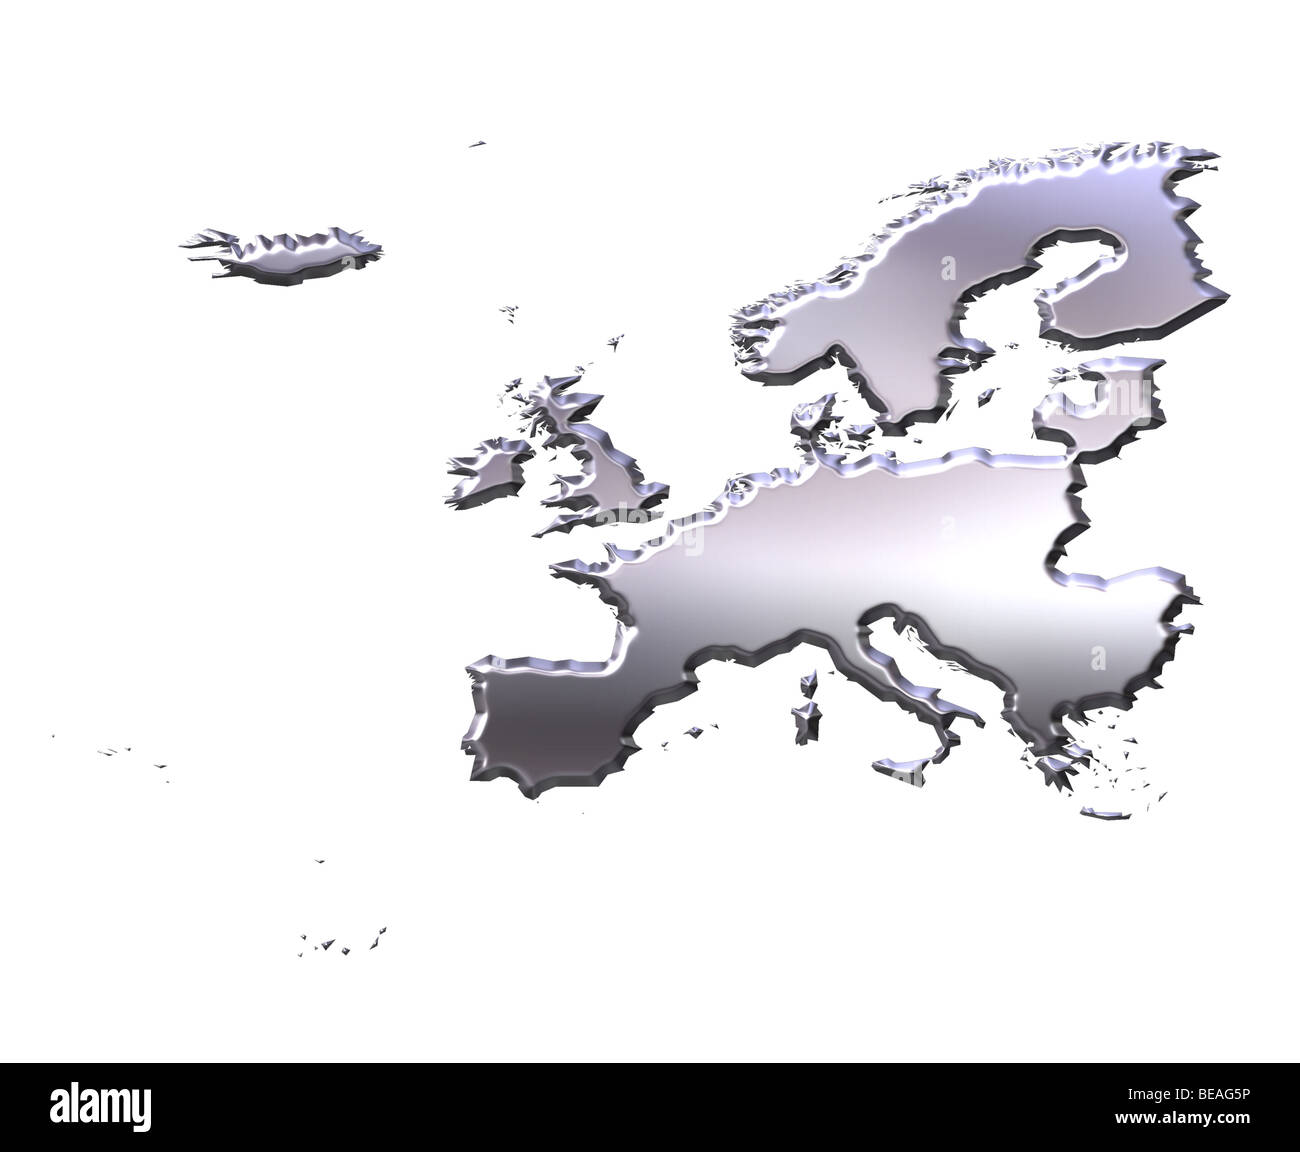 Europe 3d silver map - Stock Image